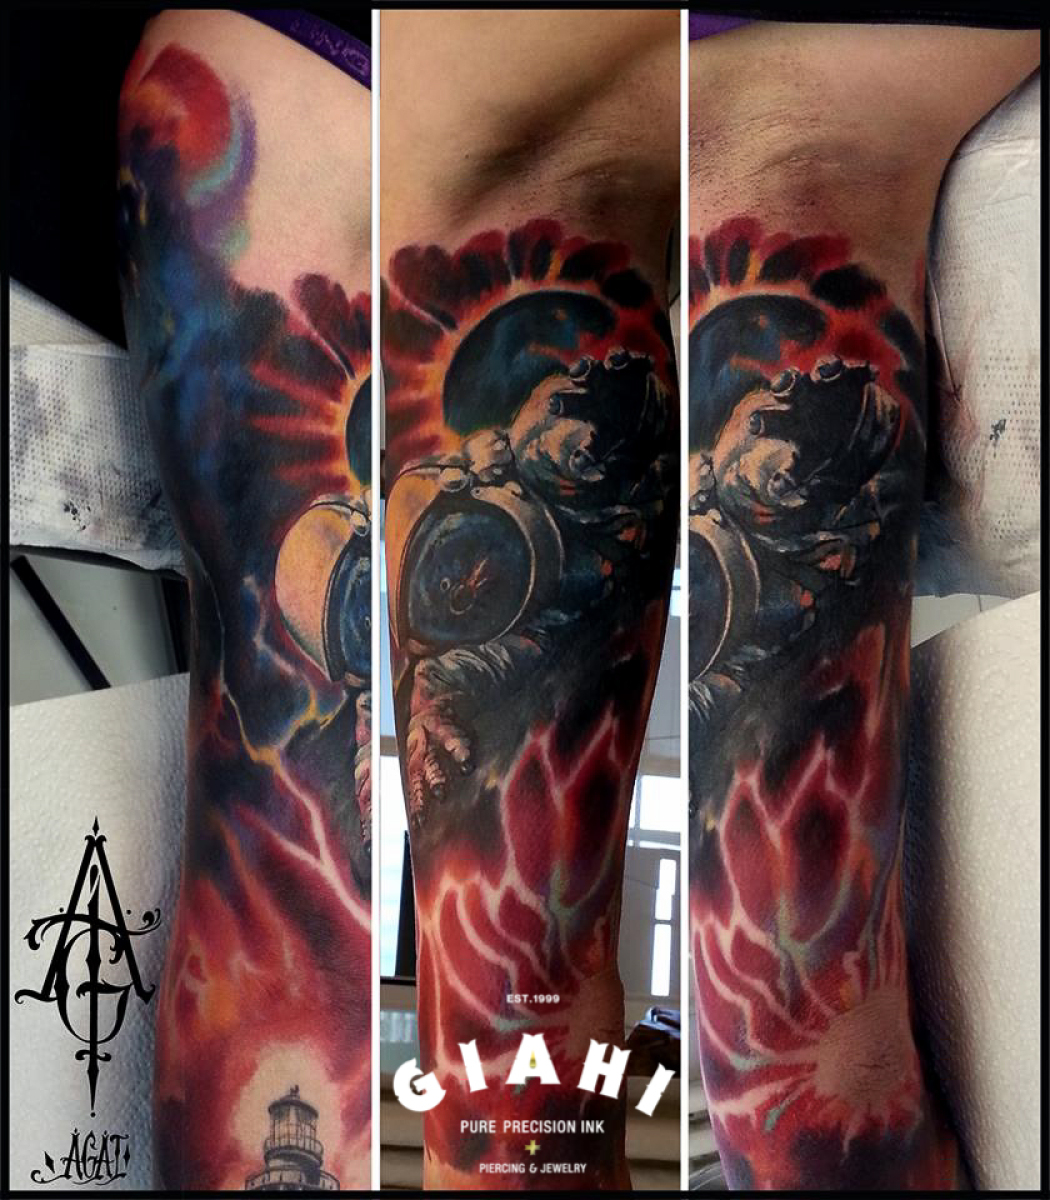 To The Comet Astronaut Tattoo By Agat Artemji